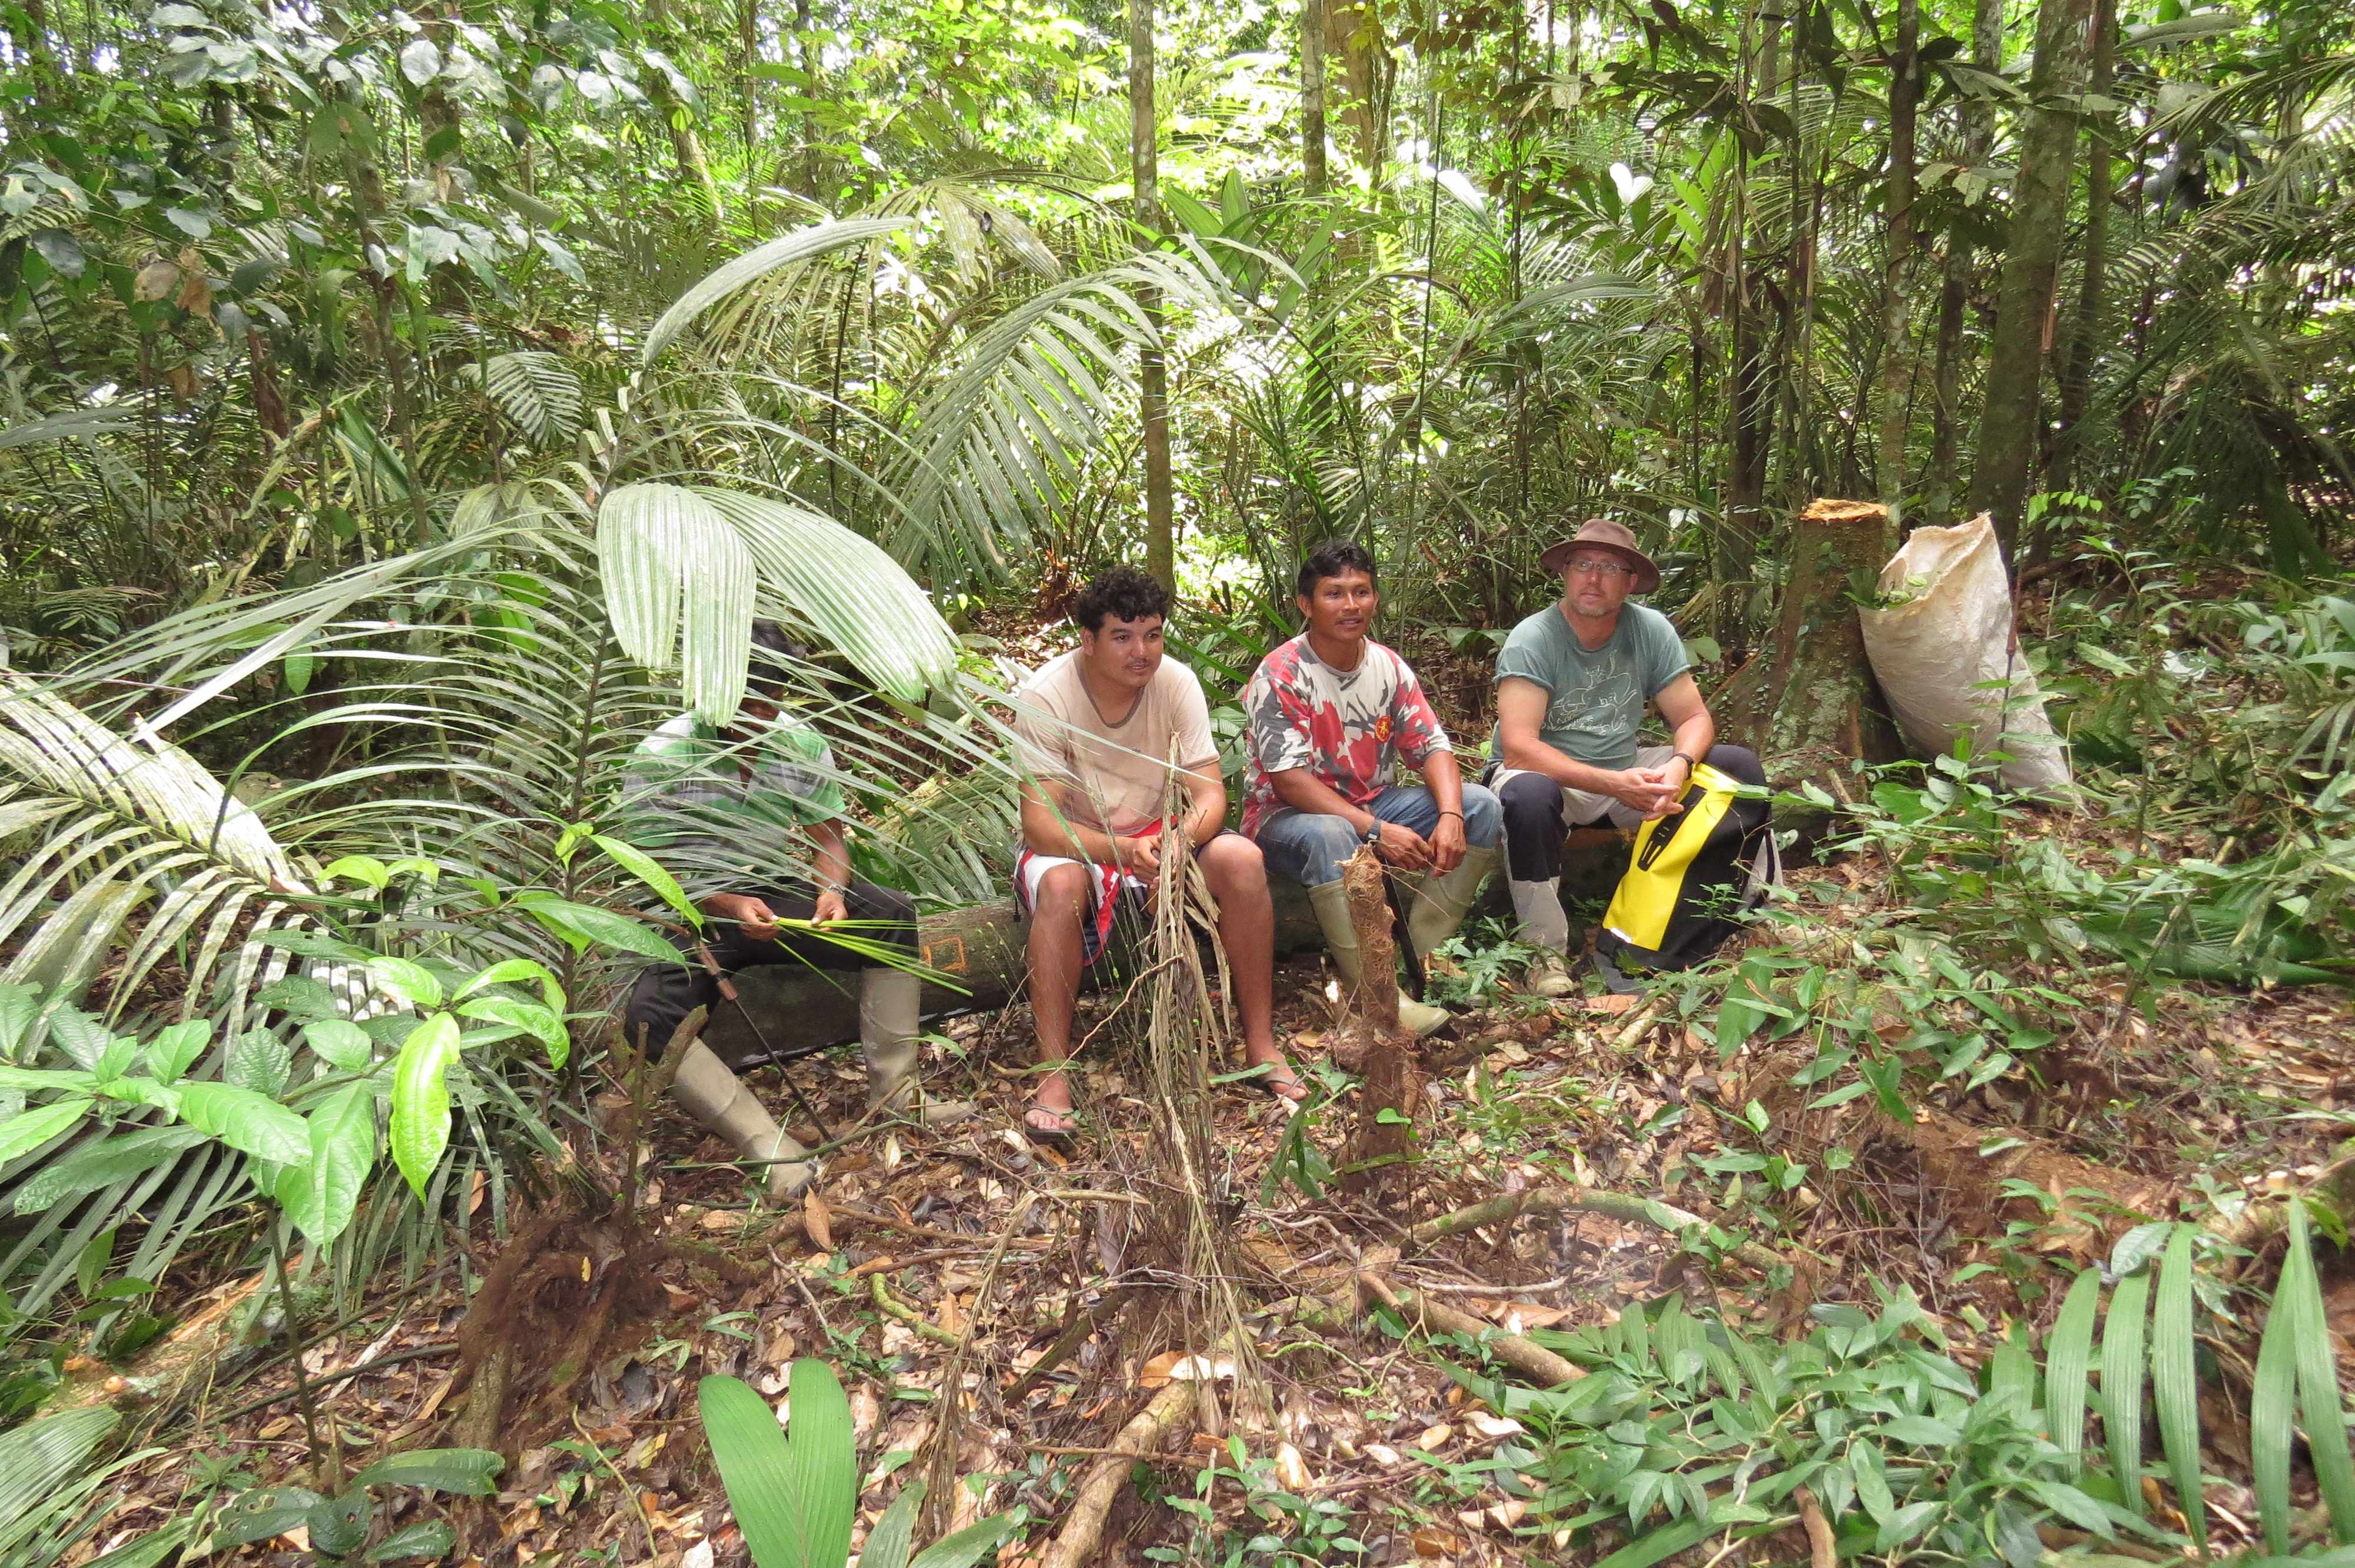 Fieldwork in the Wai wai community area, southern Guyana 2013.